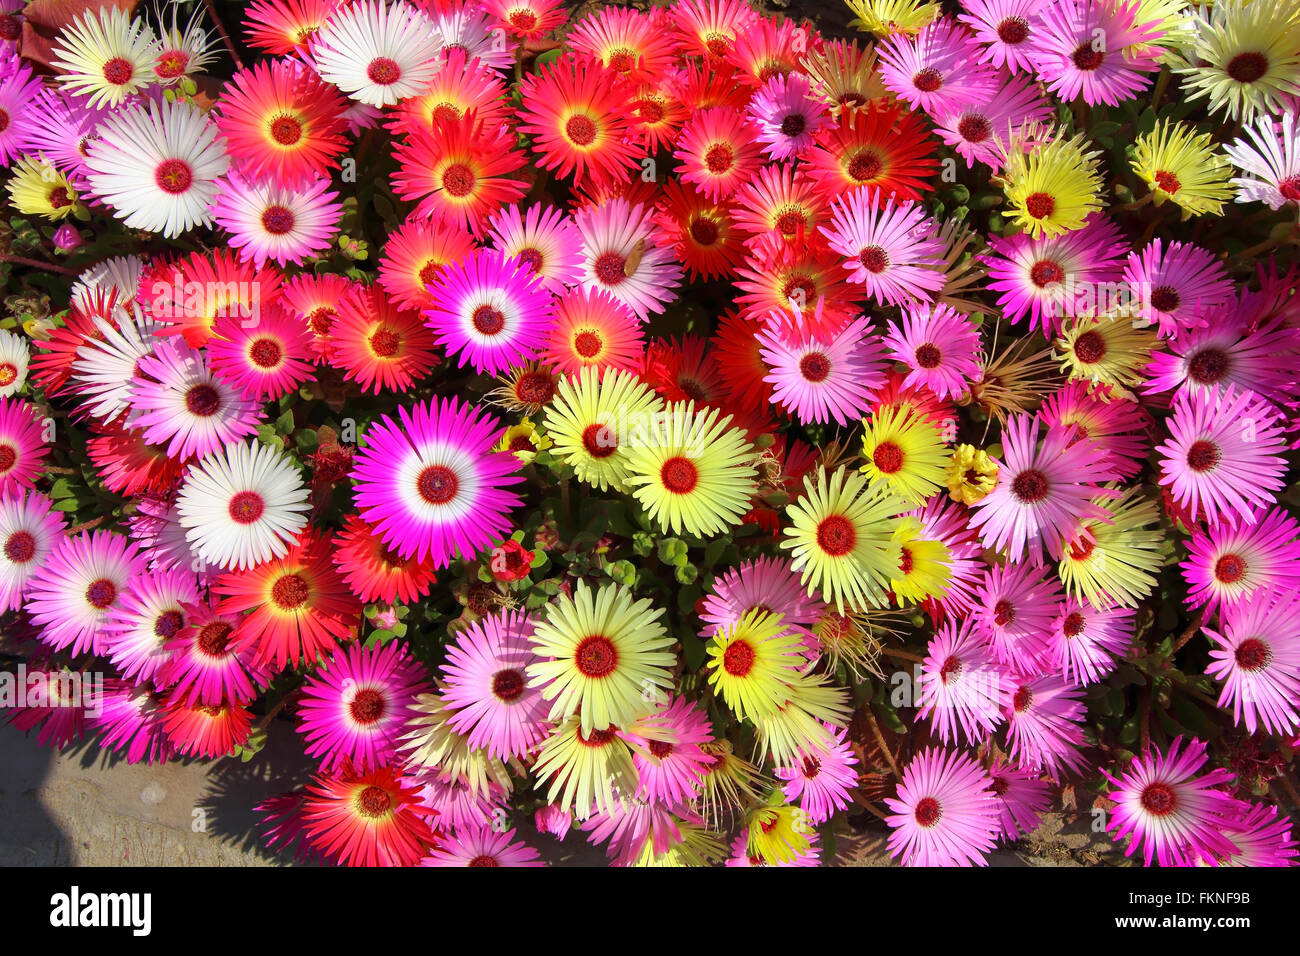 Beautiful Floral Background Of Pink Lemon Orange White And Red Mesembryanthemum Or Livingstone Daisy Plants In Full Flower